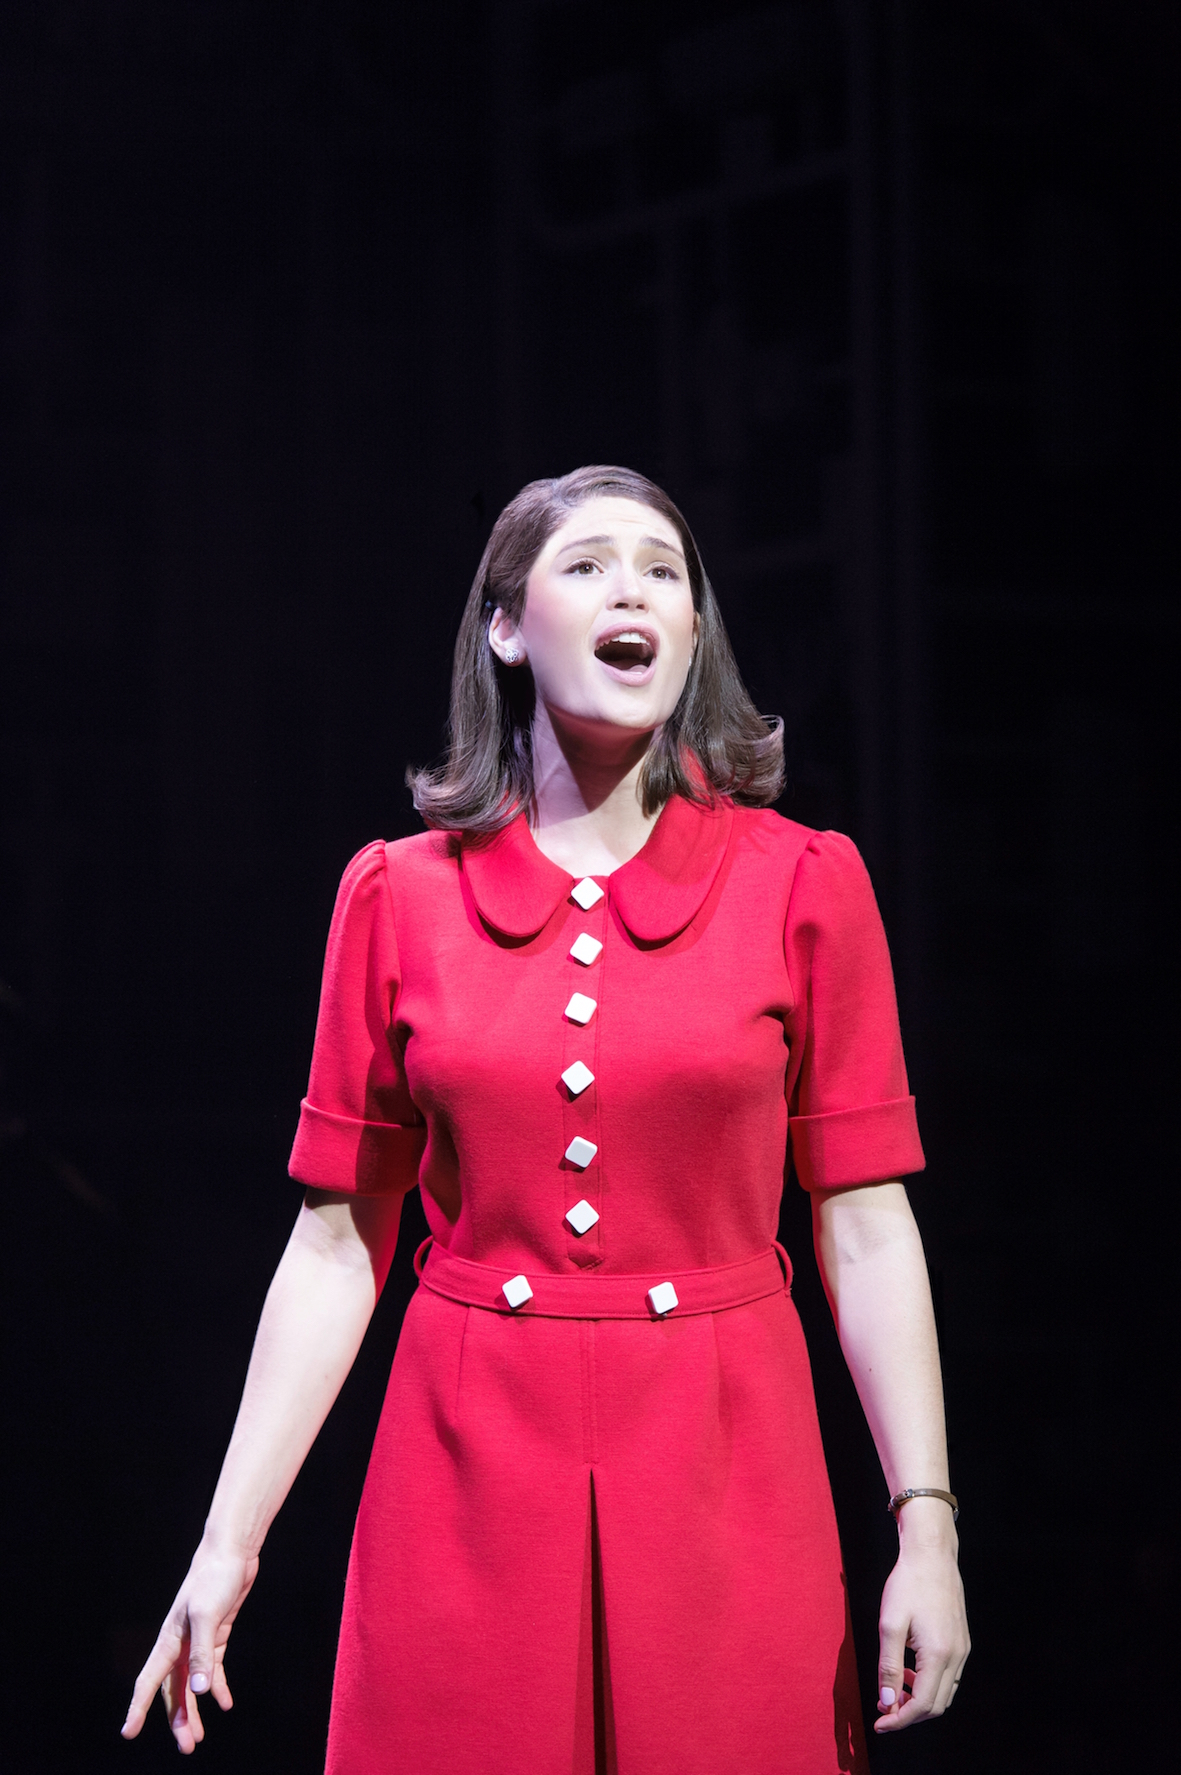 Gemma Arterton in Made in Dagenham